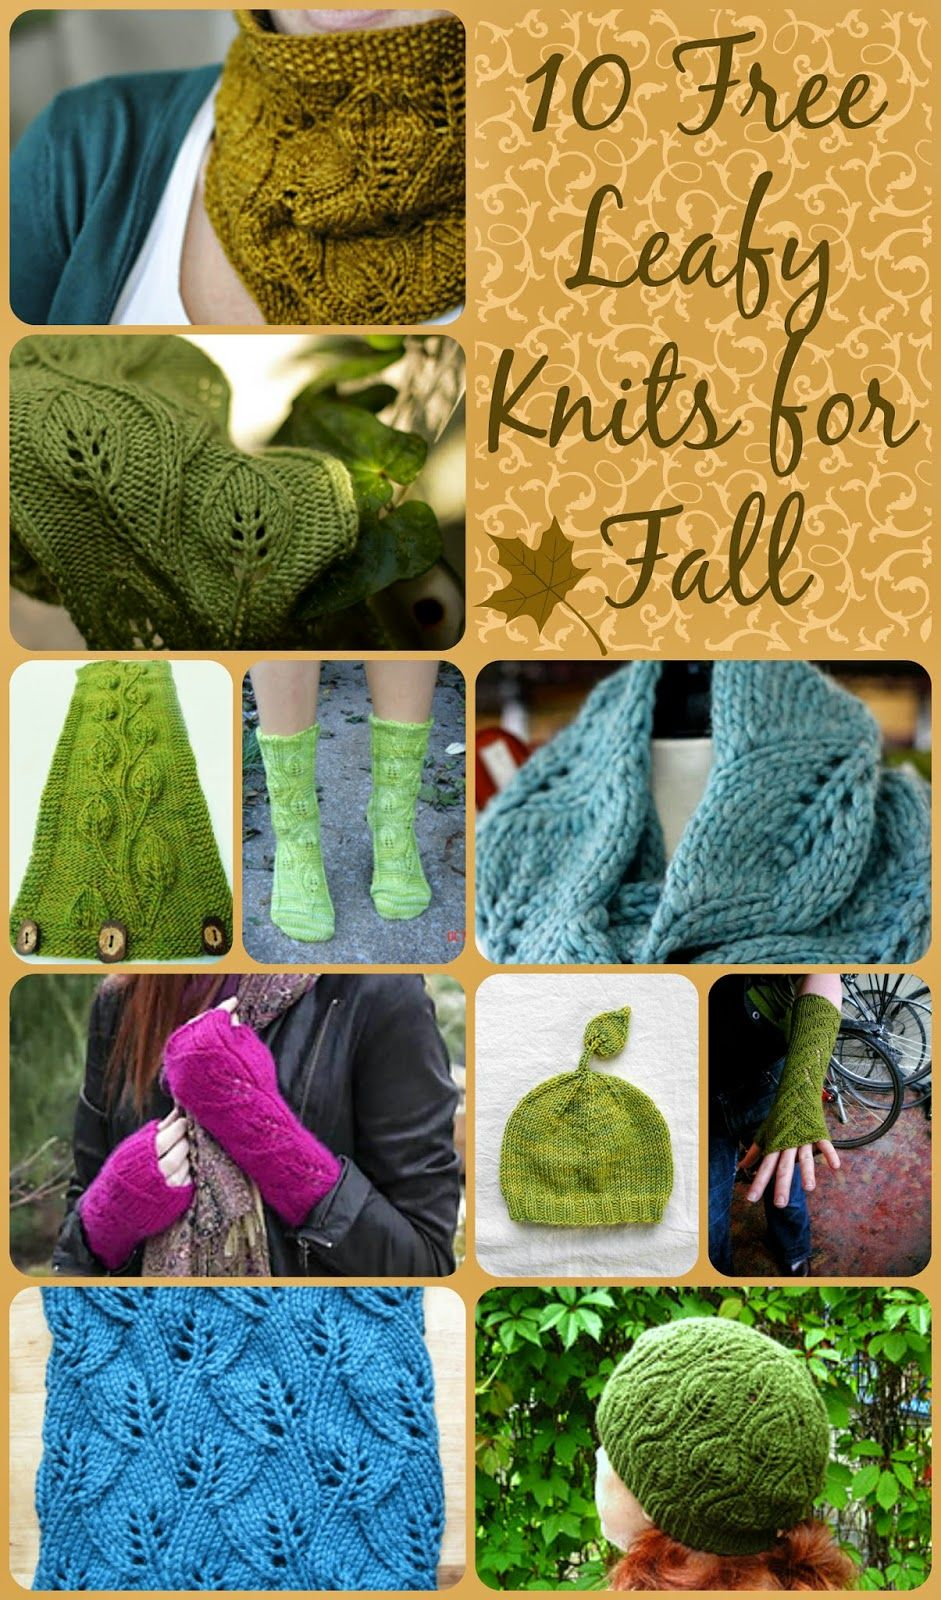 10 Free Leafy Knits For Fall Free Knit Patterns Hats Cowls